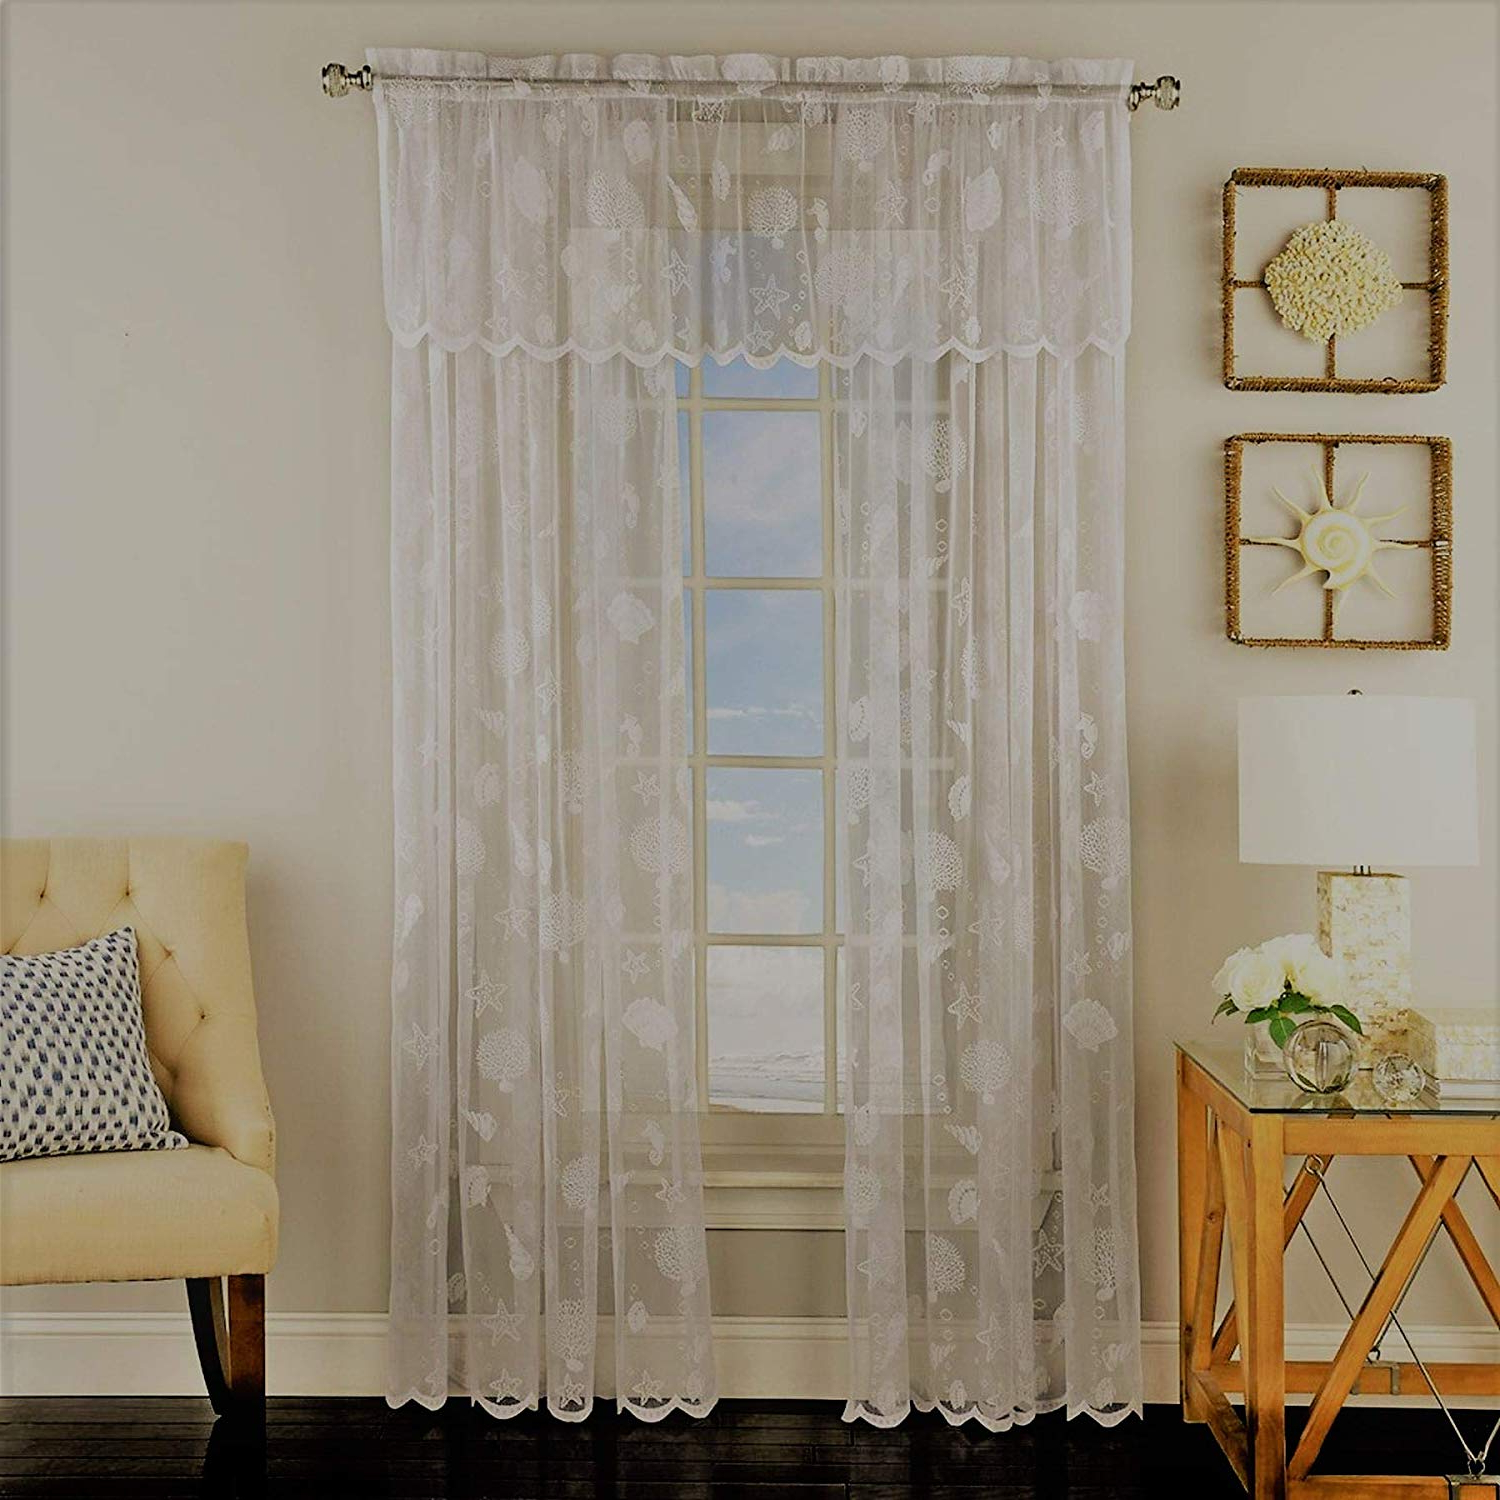 Amazon: Ben & Jonah Corales De Marinaben&jonah Pertaining To Well Known Marine Life Motif Knitted Lace Window Curtain Pieces (View 14 of 20)